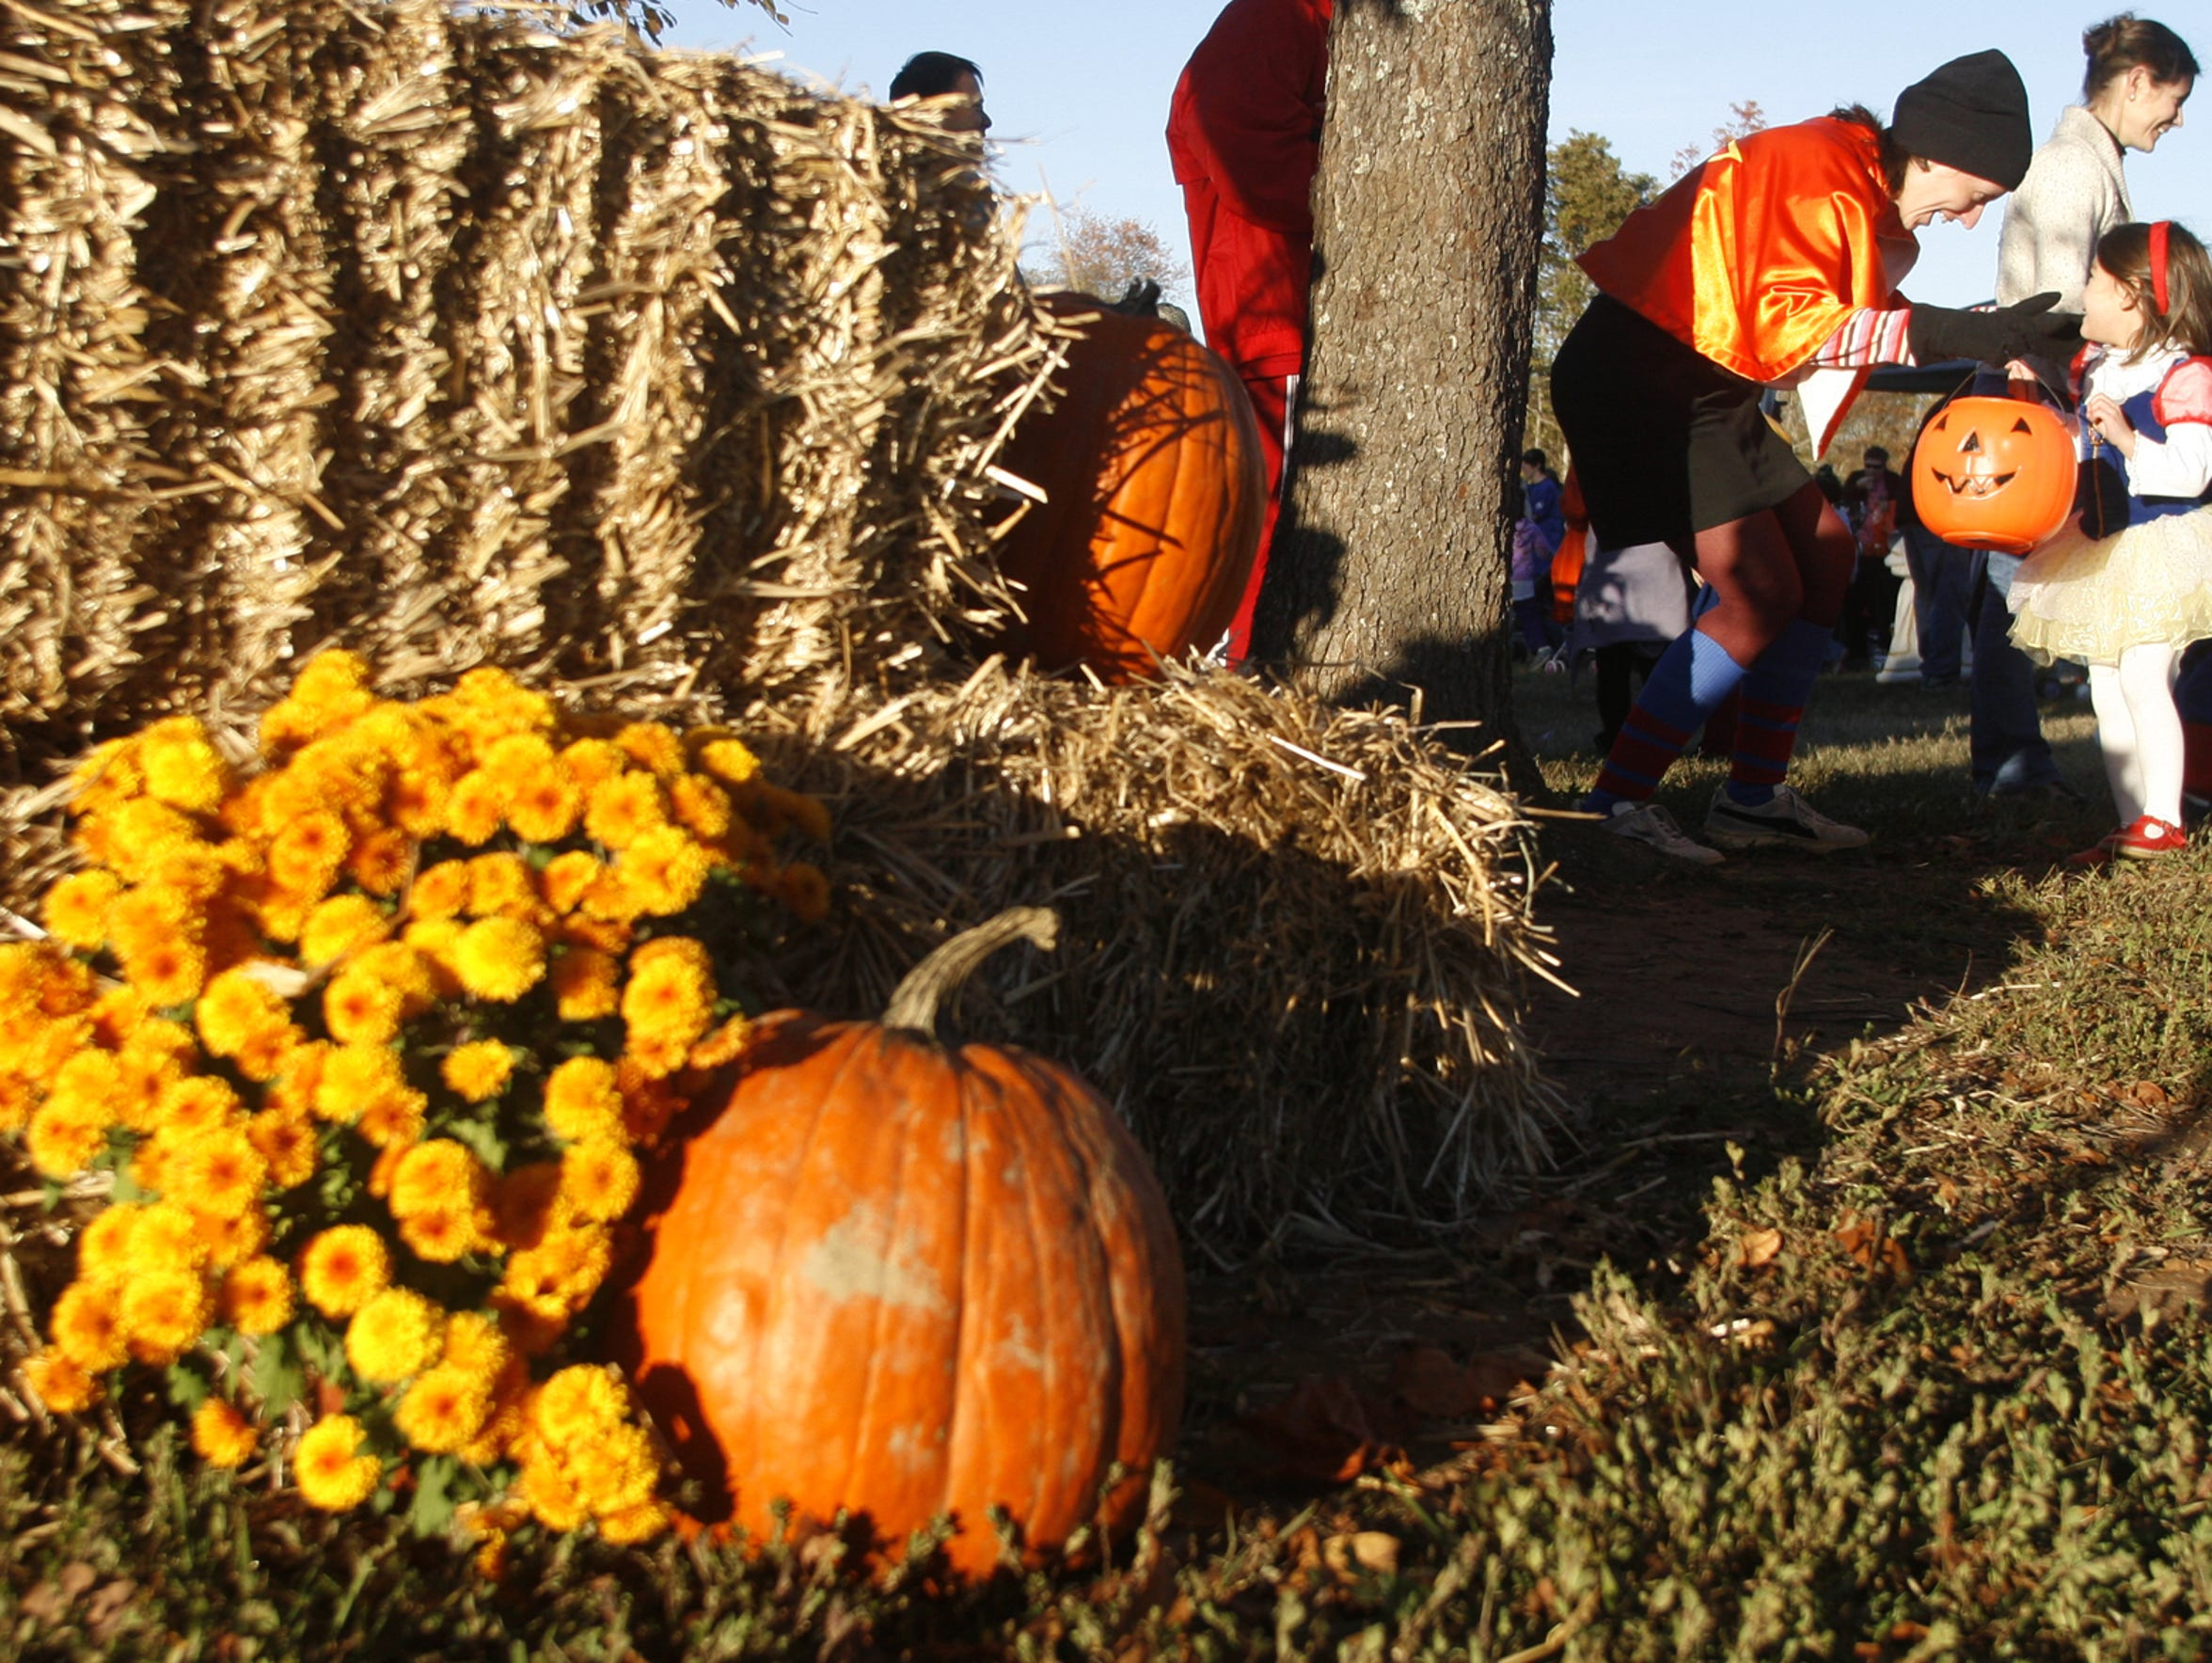 Kids can enjoy all sorts of fall fun at Smyrna Parks